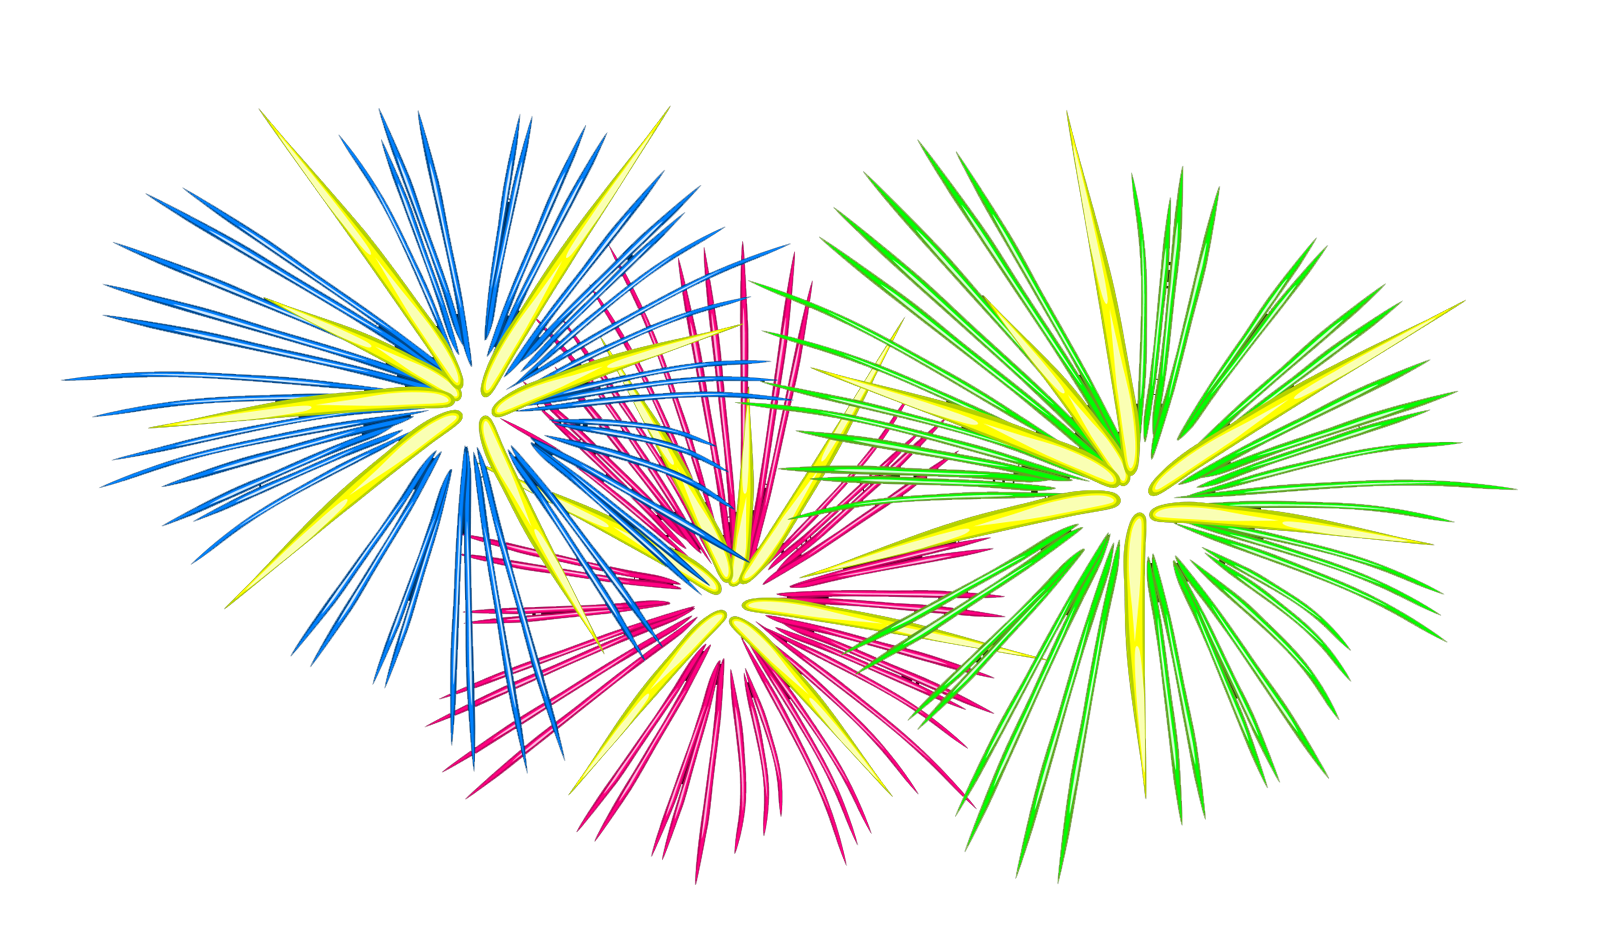 Free Firework Cliparts, Download Free Clip Art, Free Clip Art on Clipart  Library